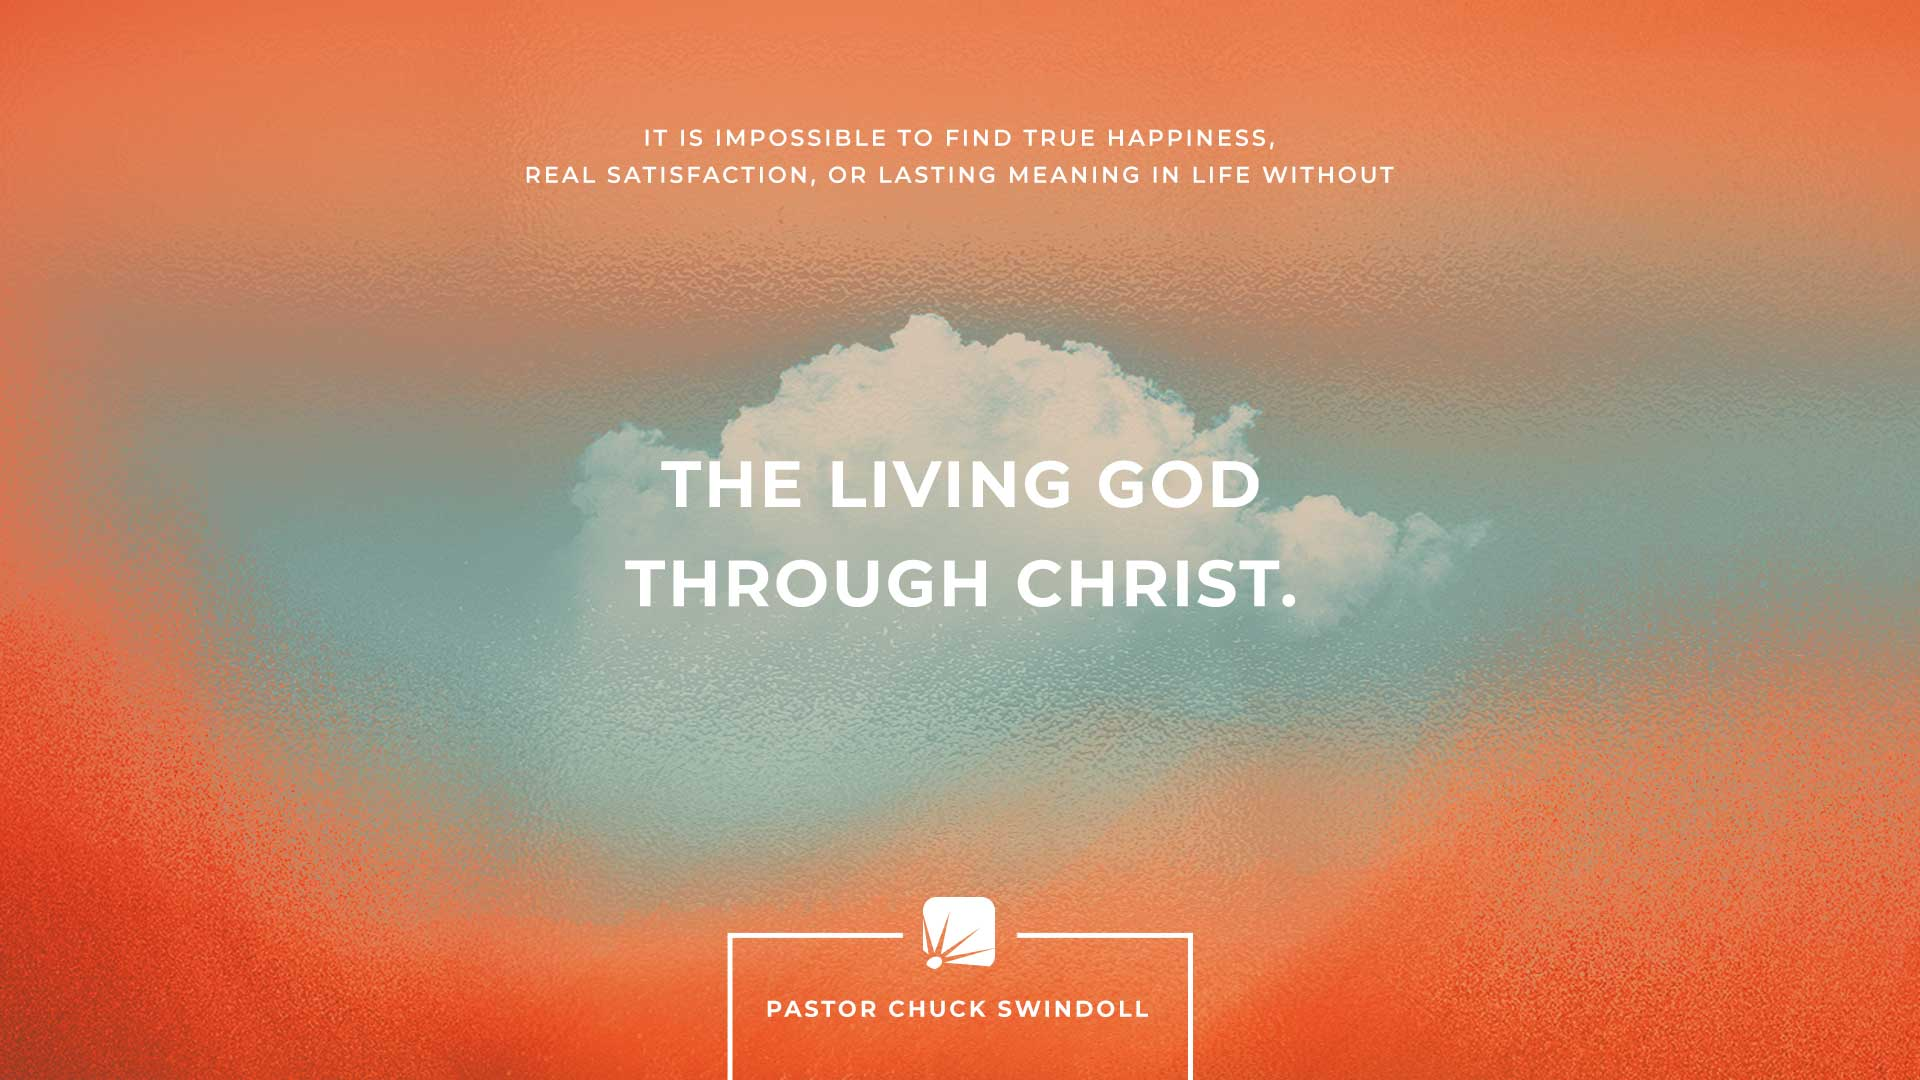 """quote: """"It is impossible to find true happiness, real satisfaction, or lasting meaning in life without the living God through Christ."""""""